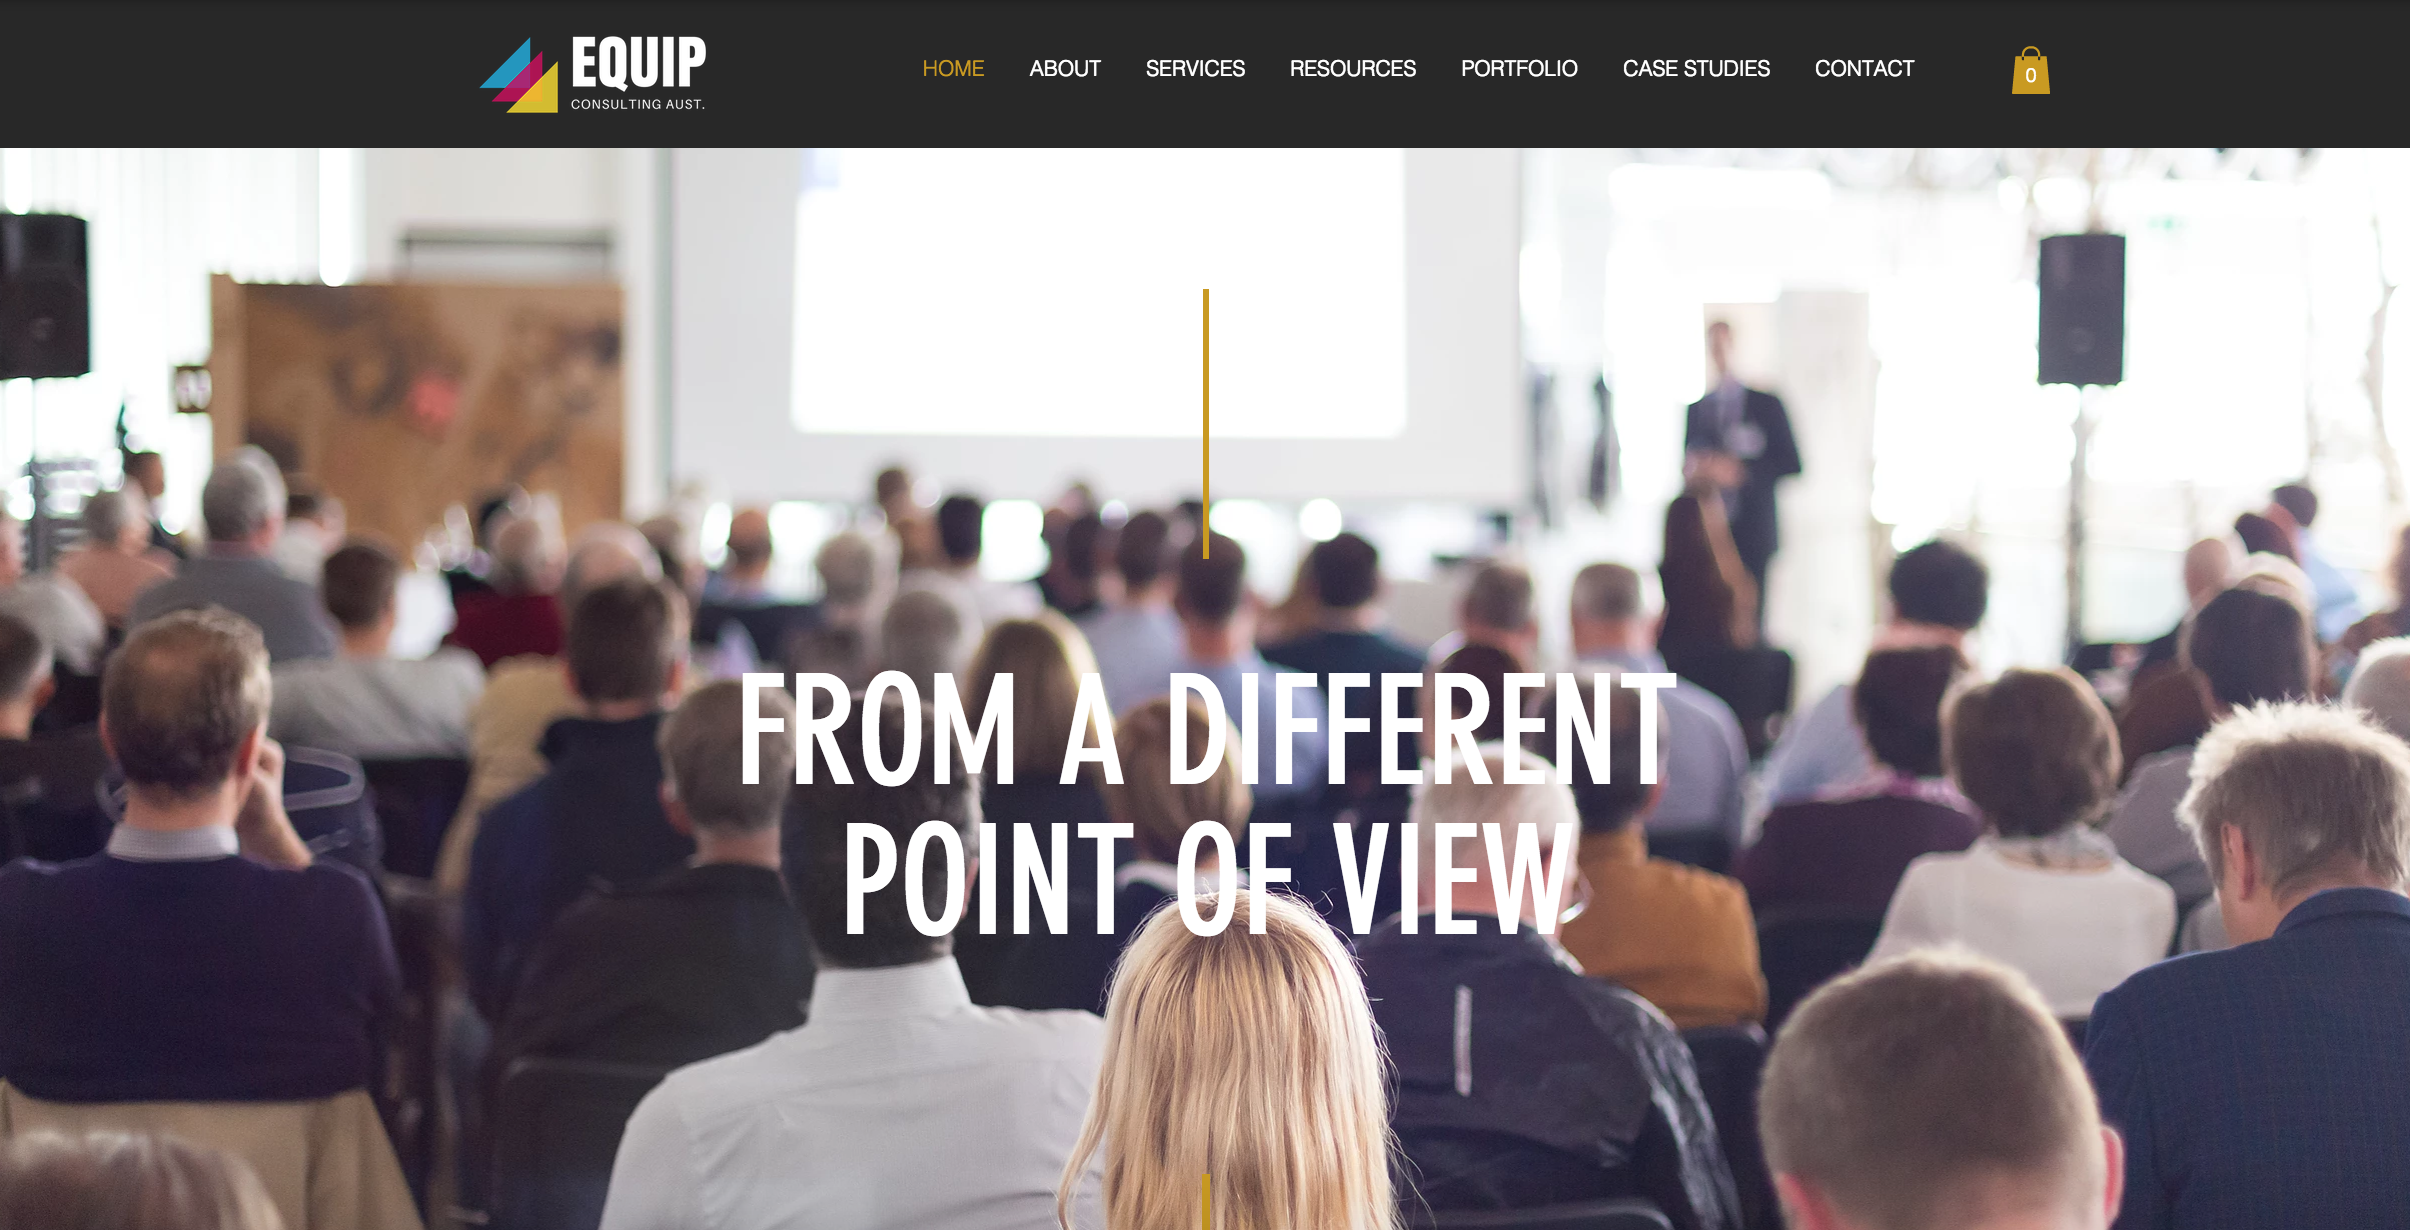 Equip consulting australia business development specialists malvernweather Choice Image